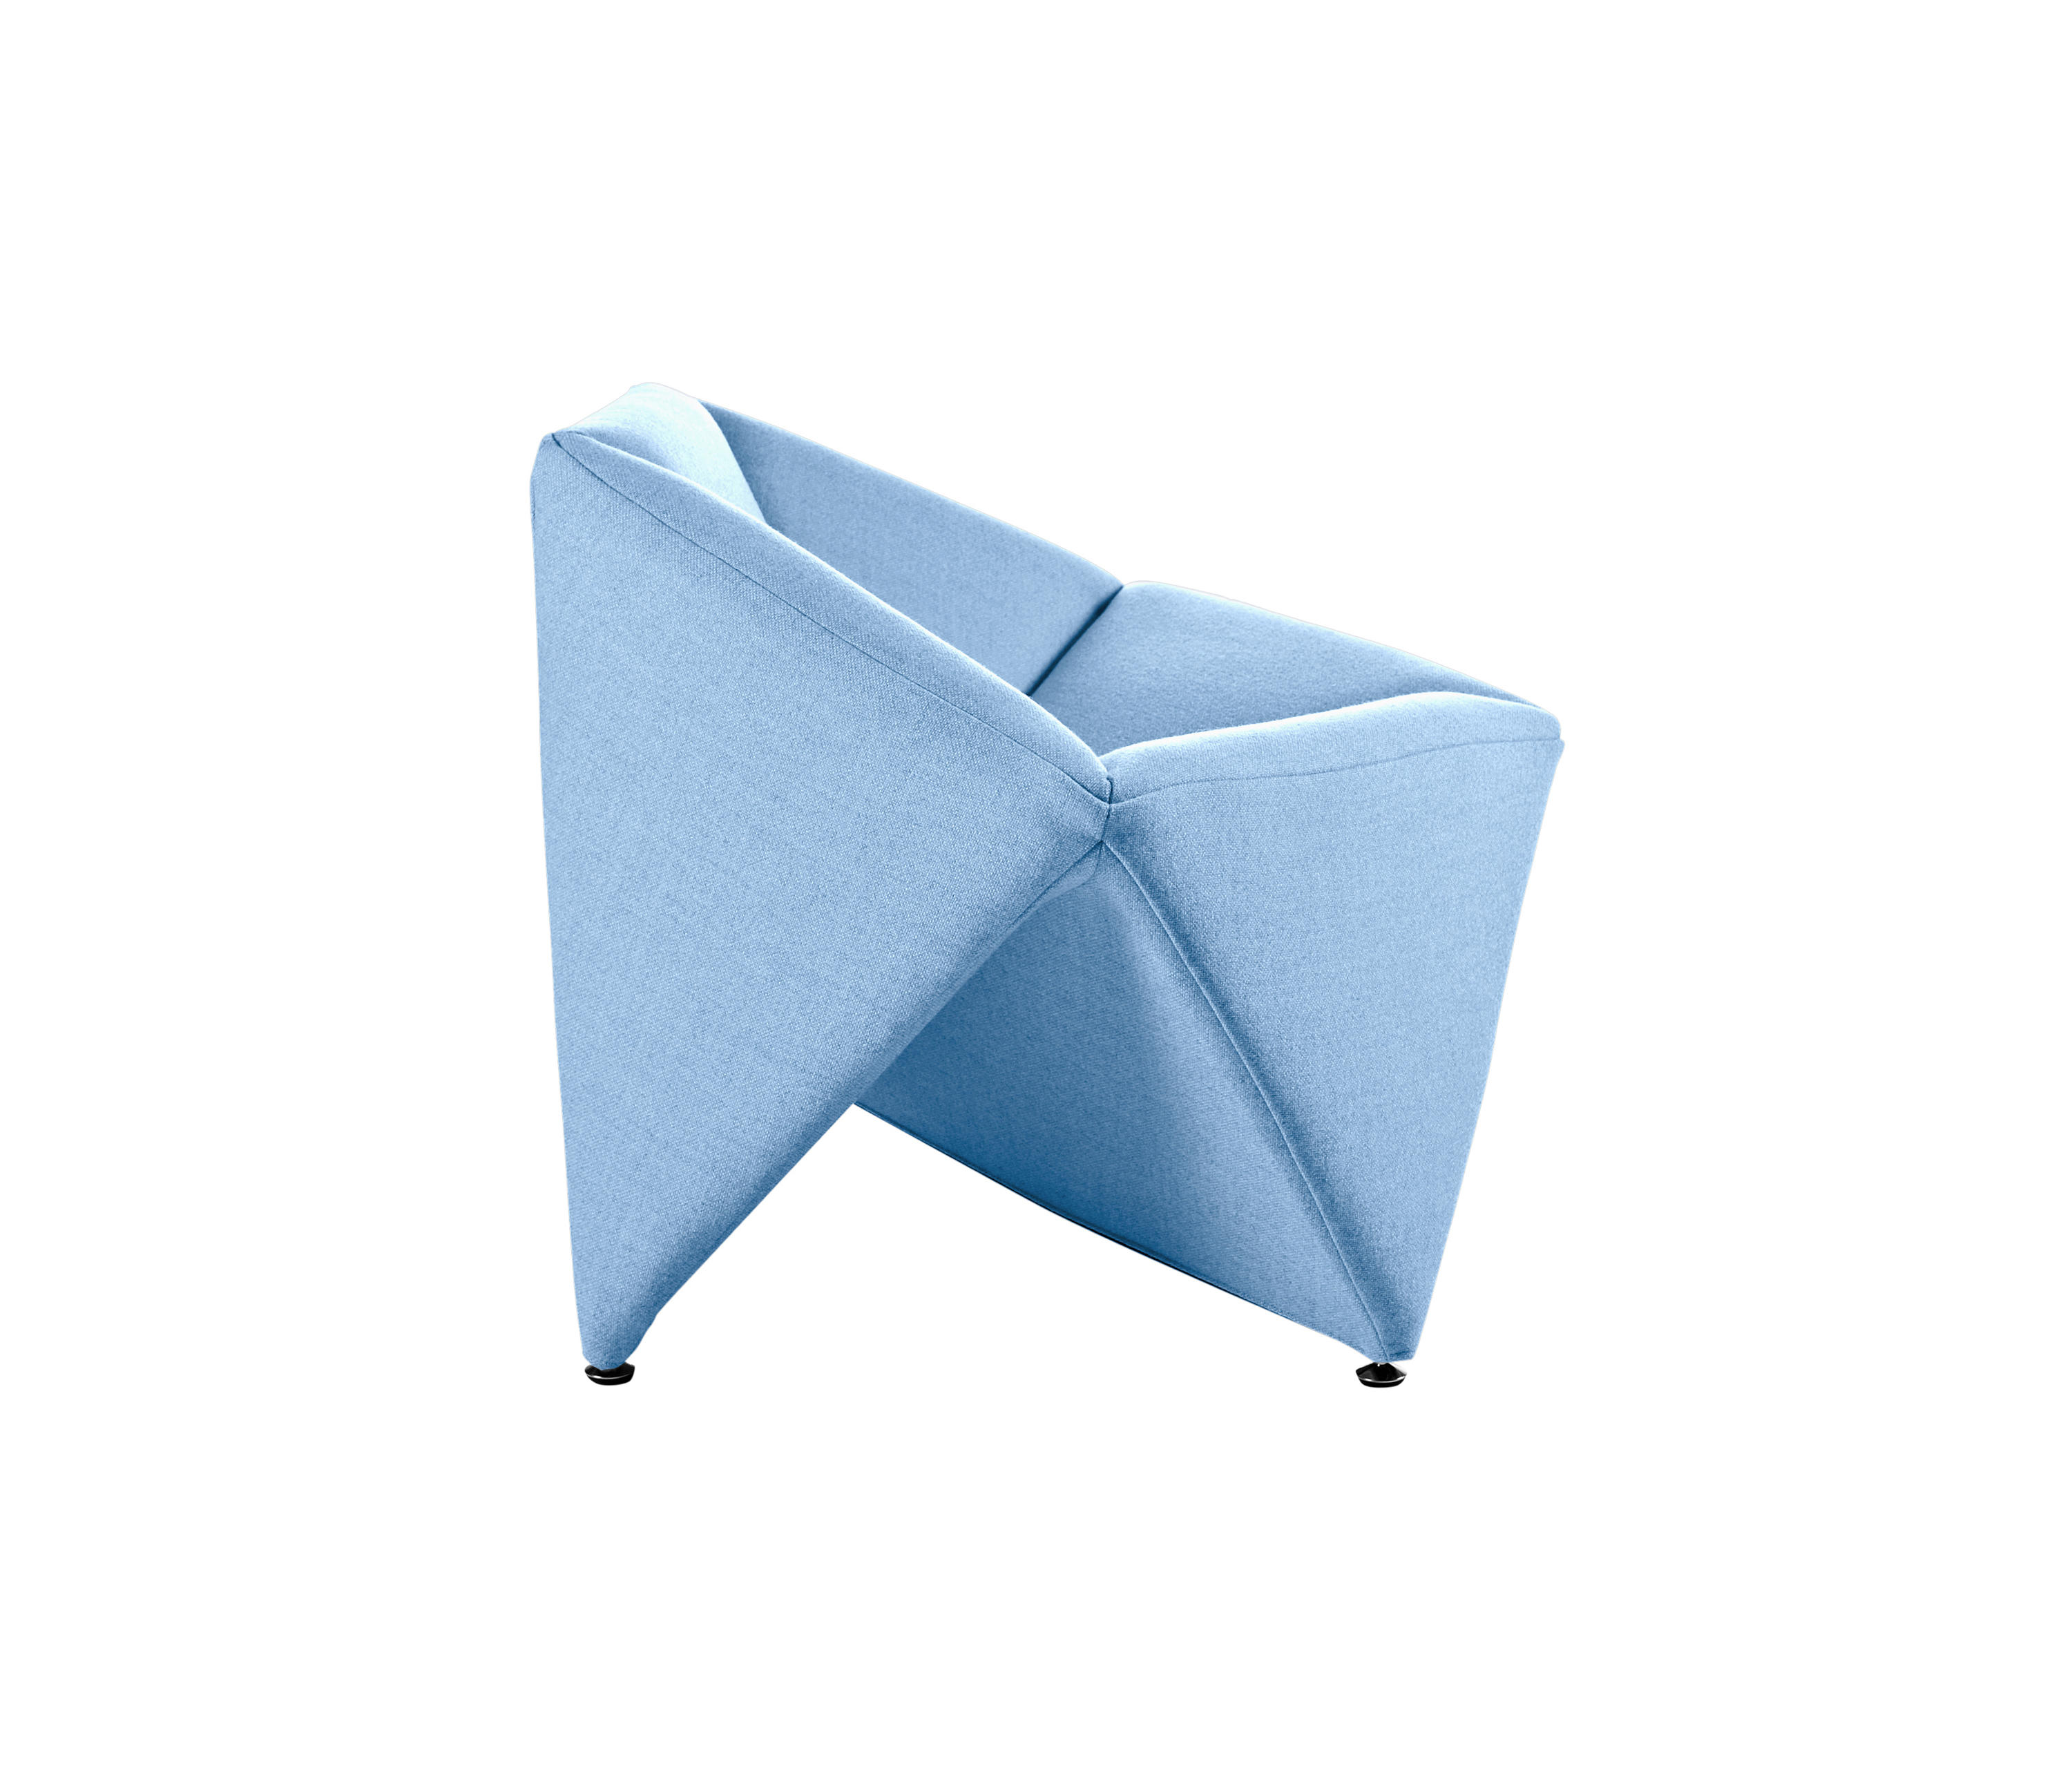 FOLD LOUNGE CHAIR Lounge chairs from Softline A S